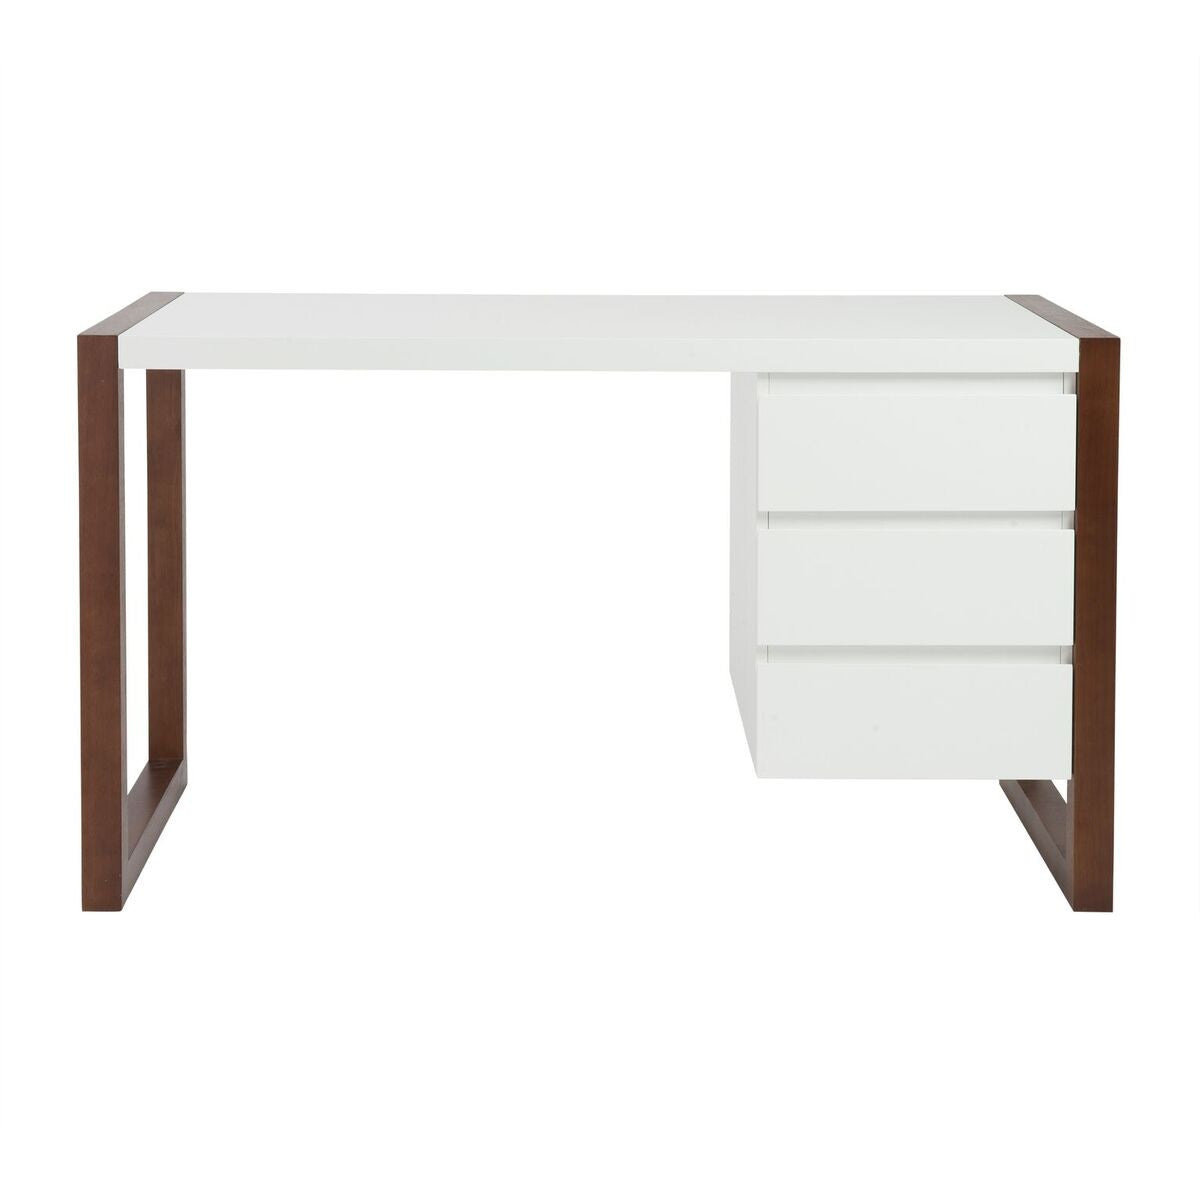 "51"" Matte White Lacquer & Dark Walnut Desk with Drawers"